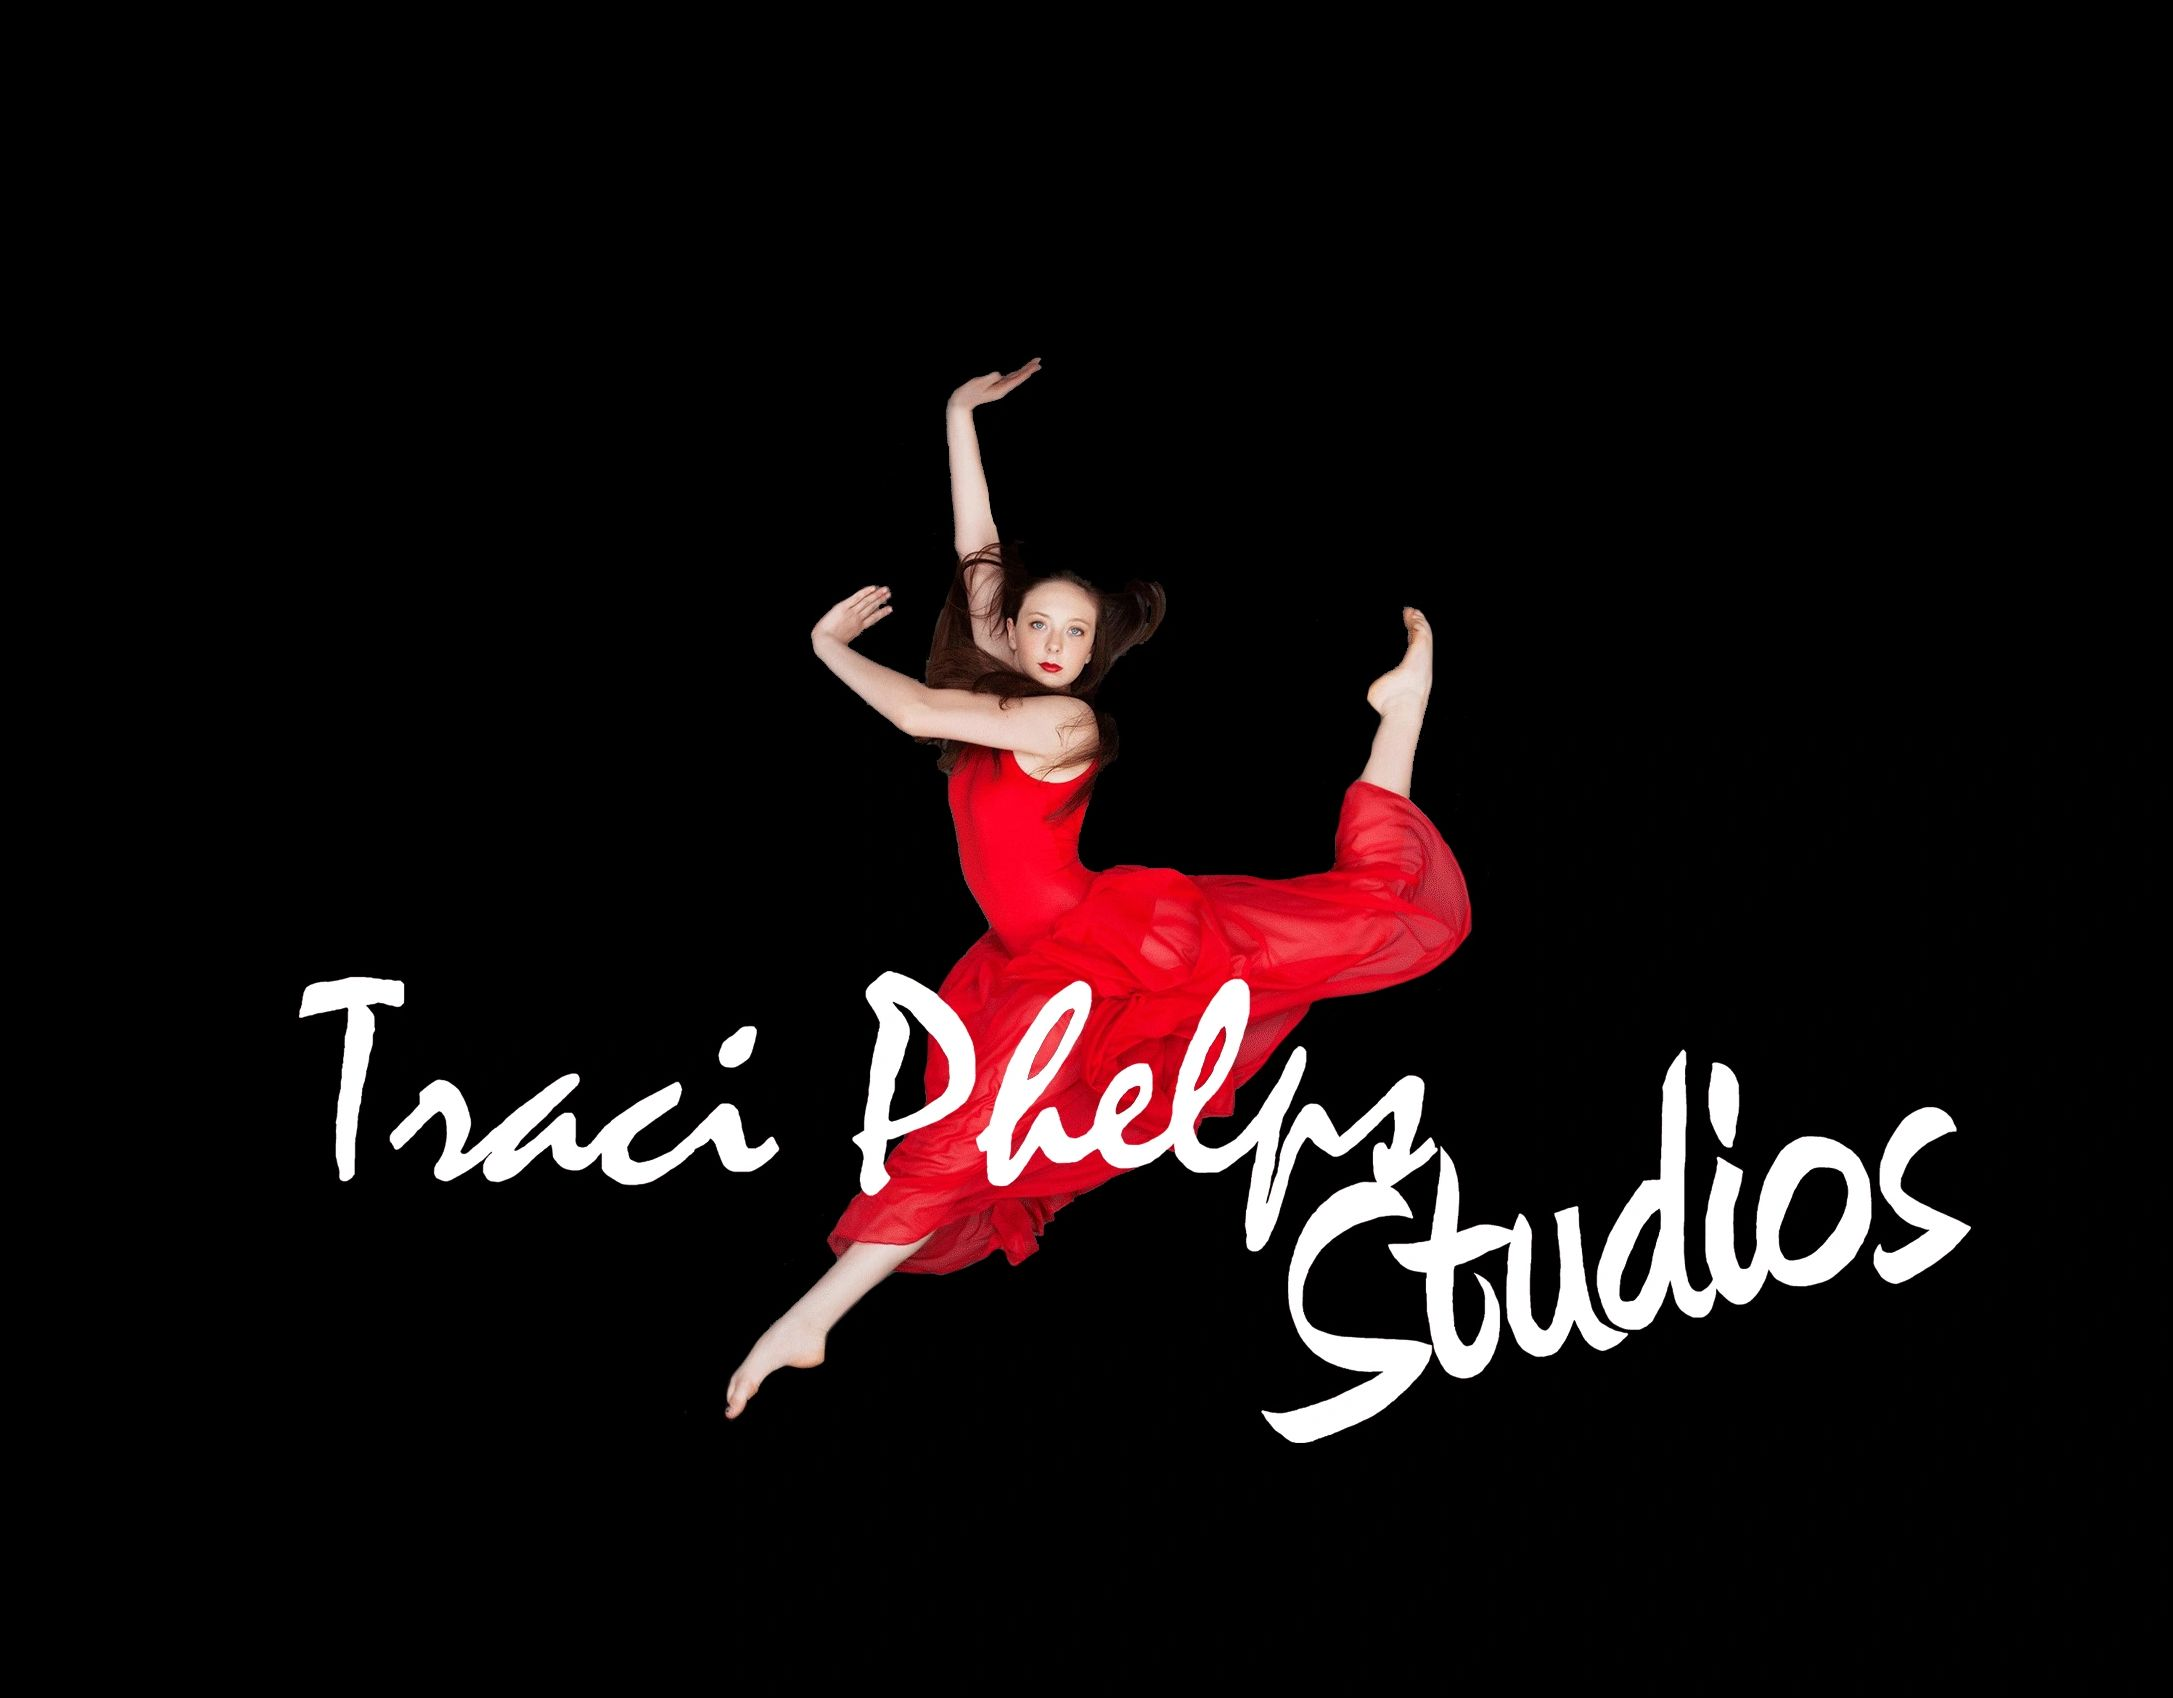 Traci Phelps Studios Dance Instruction Kalamazoo Michigan